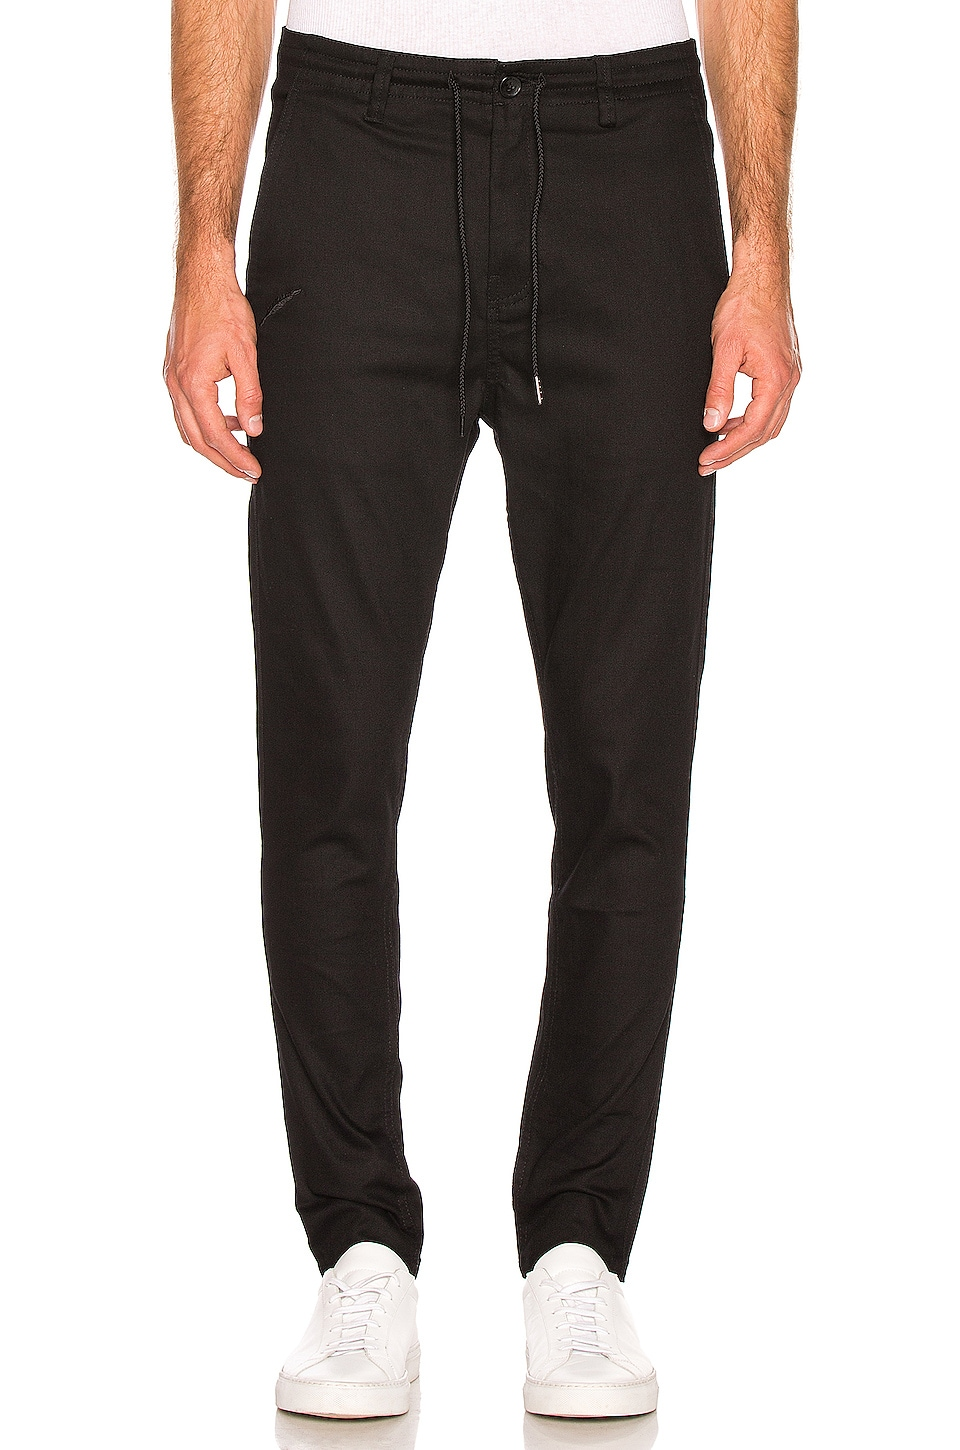 Publish Thorn Pants in Black